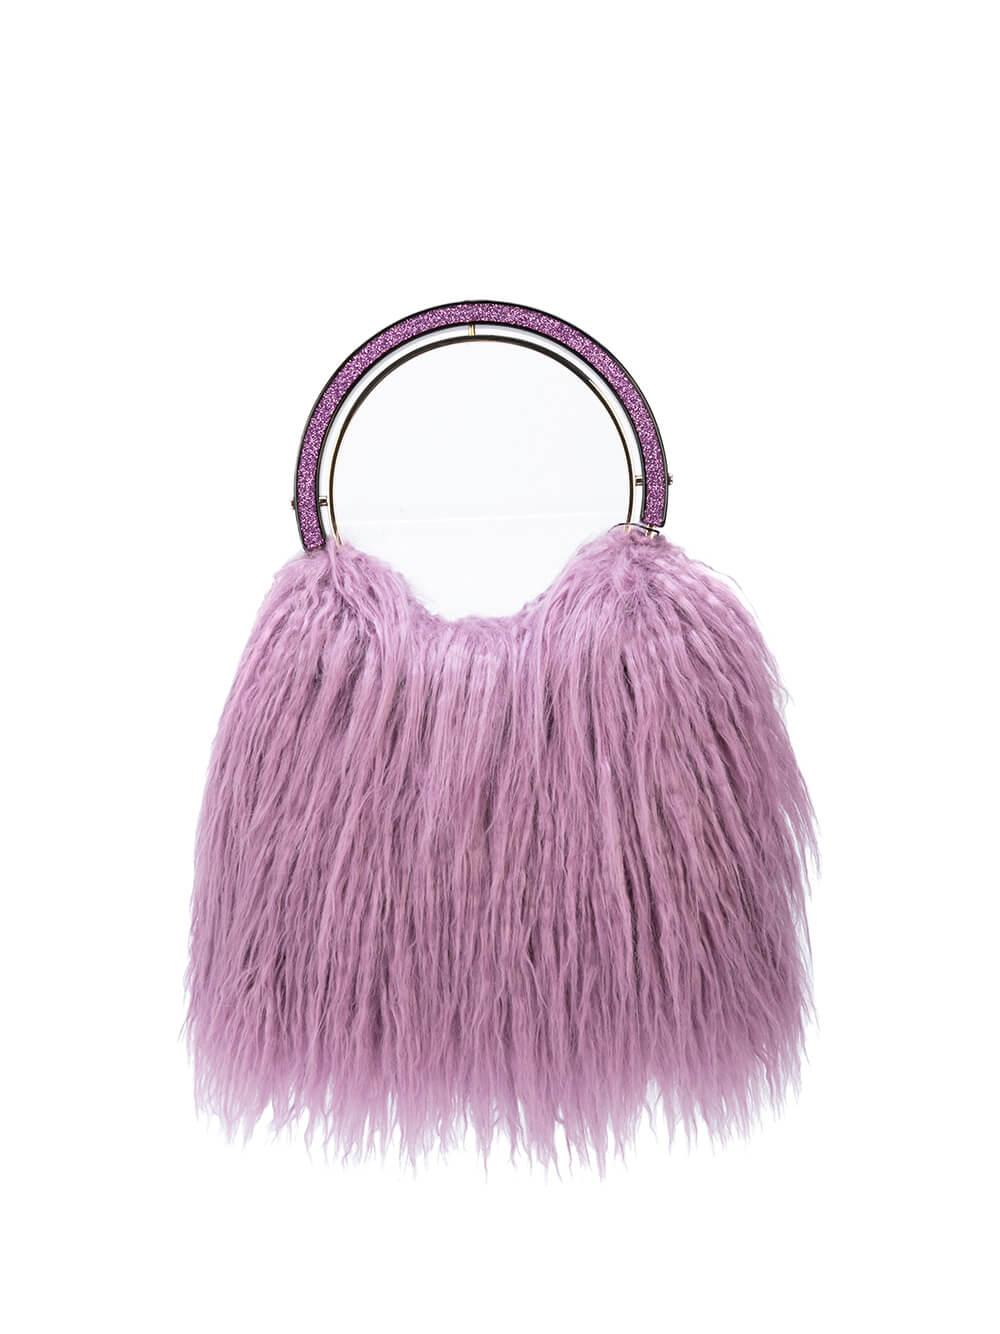 Betty Fur Swap Bag Item # PXRUA738